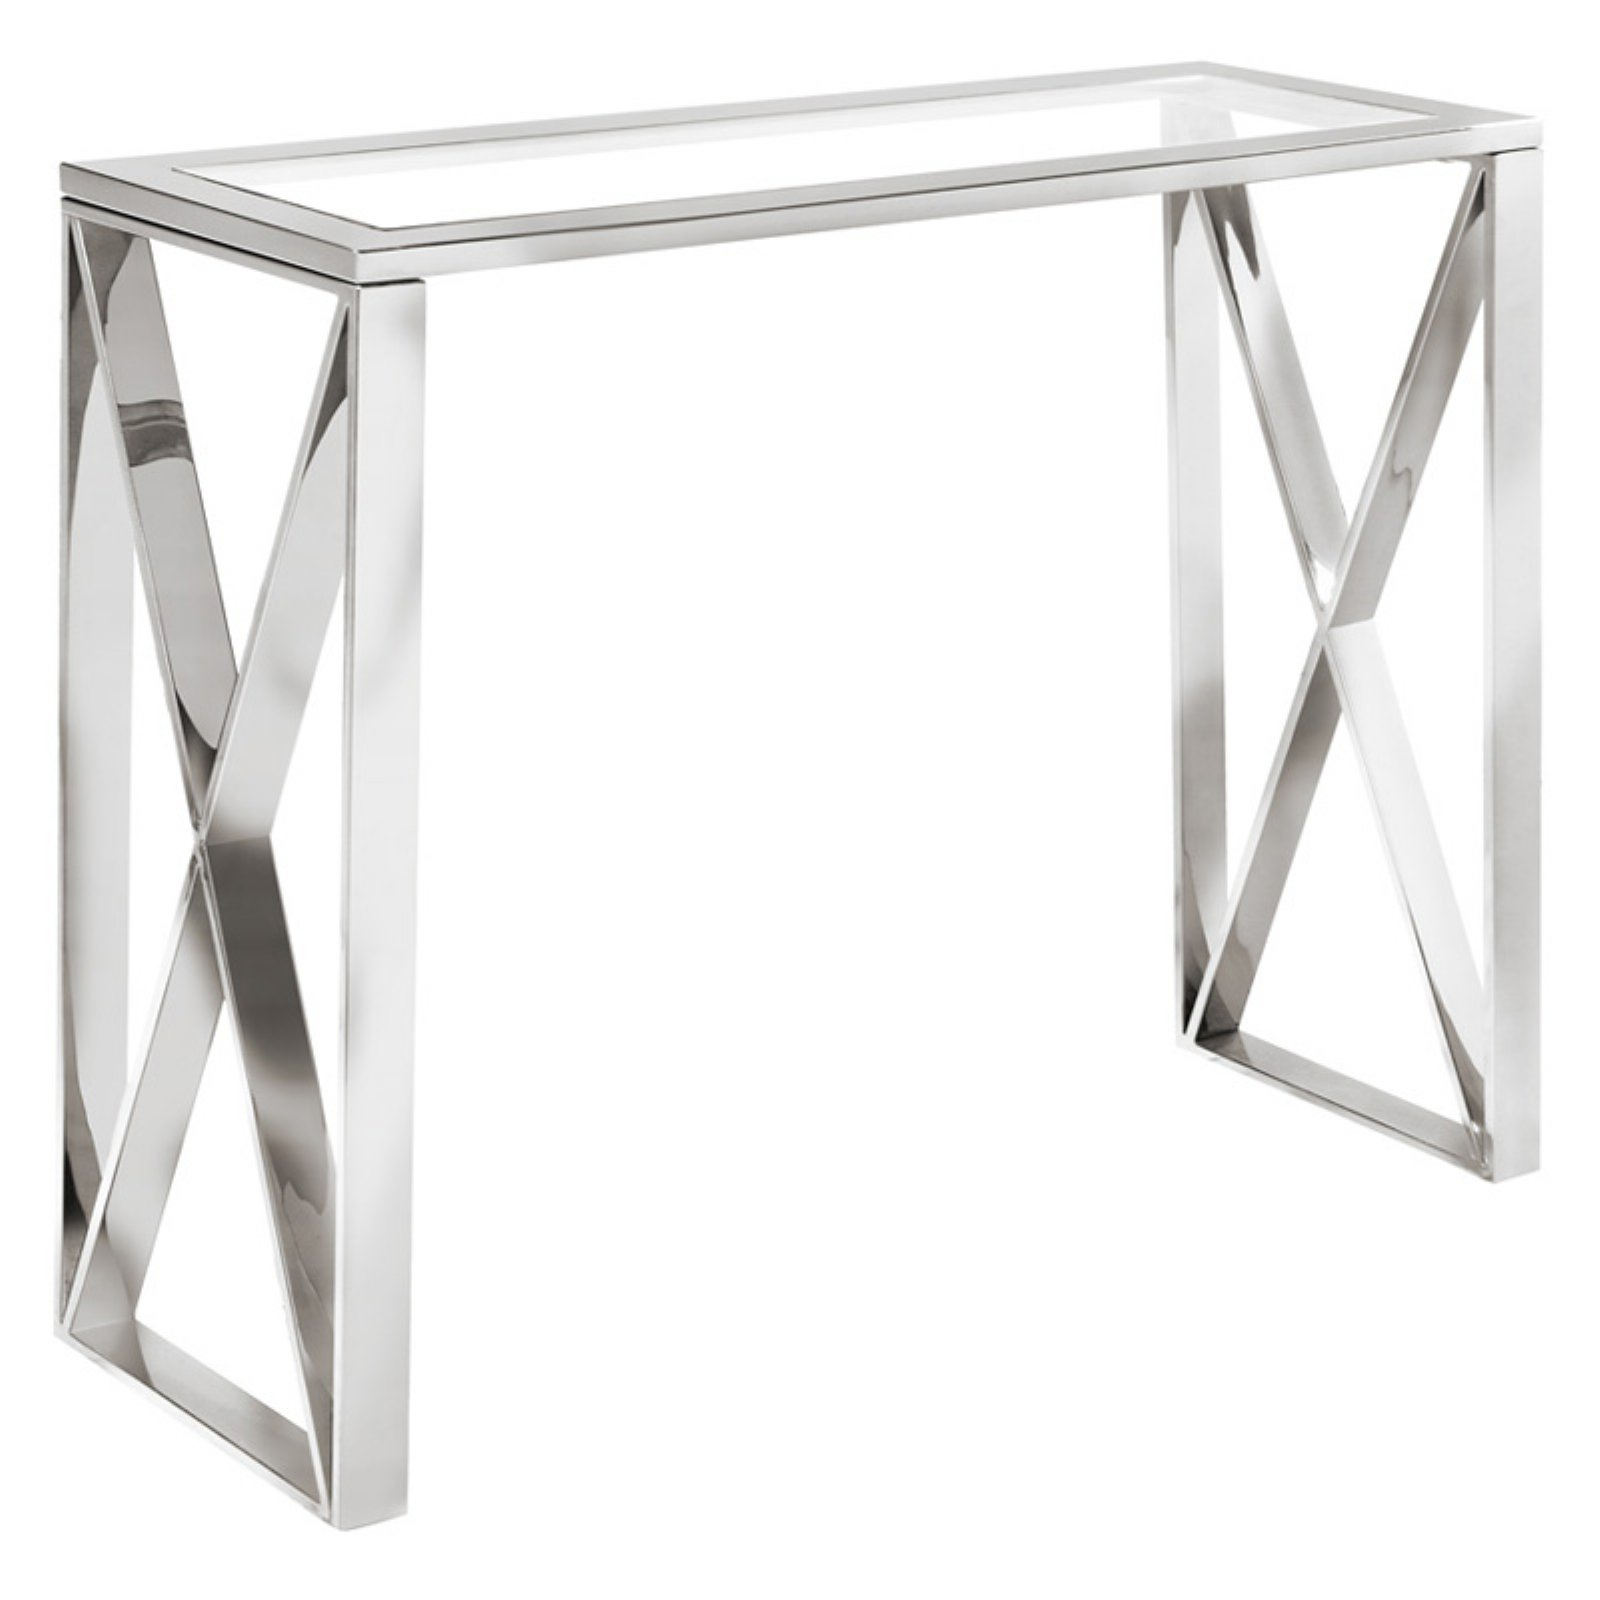 Uptown Club Chester Console Table